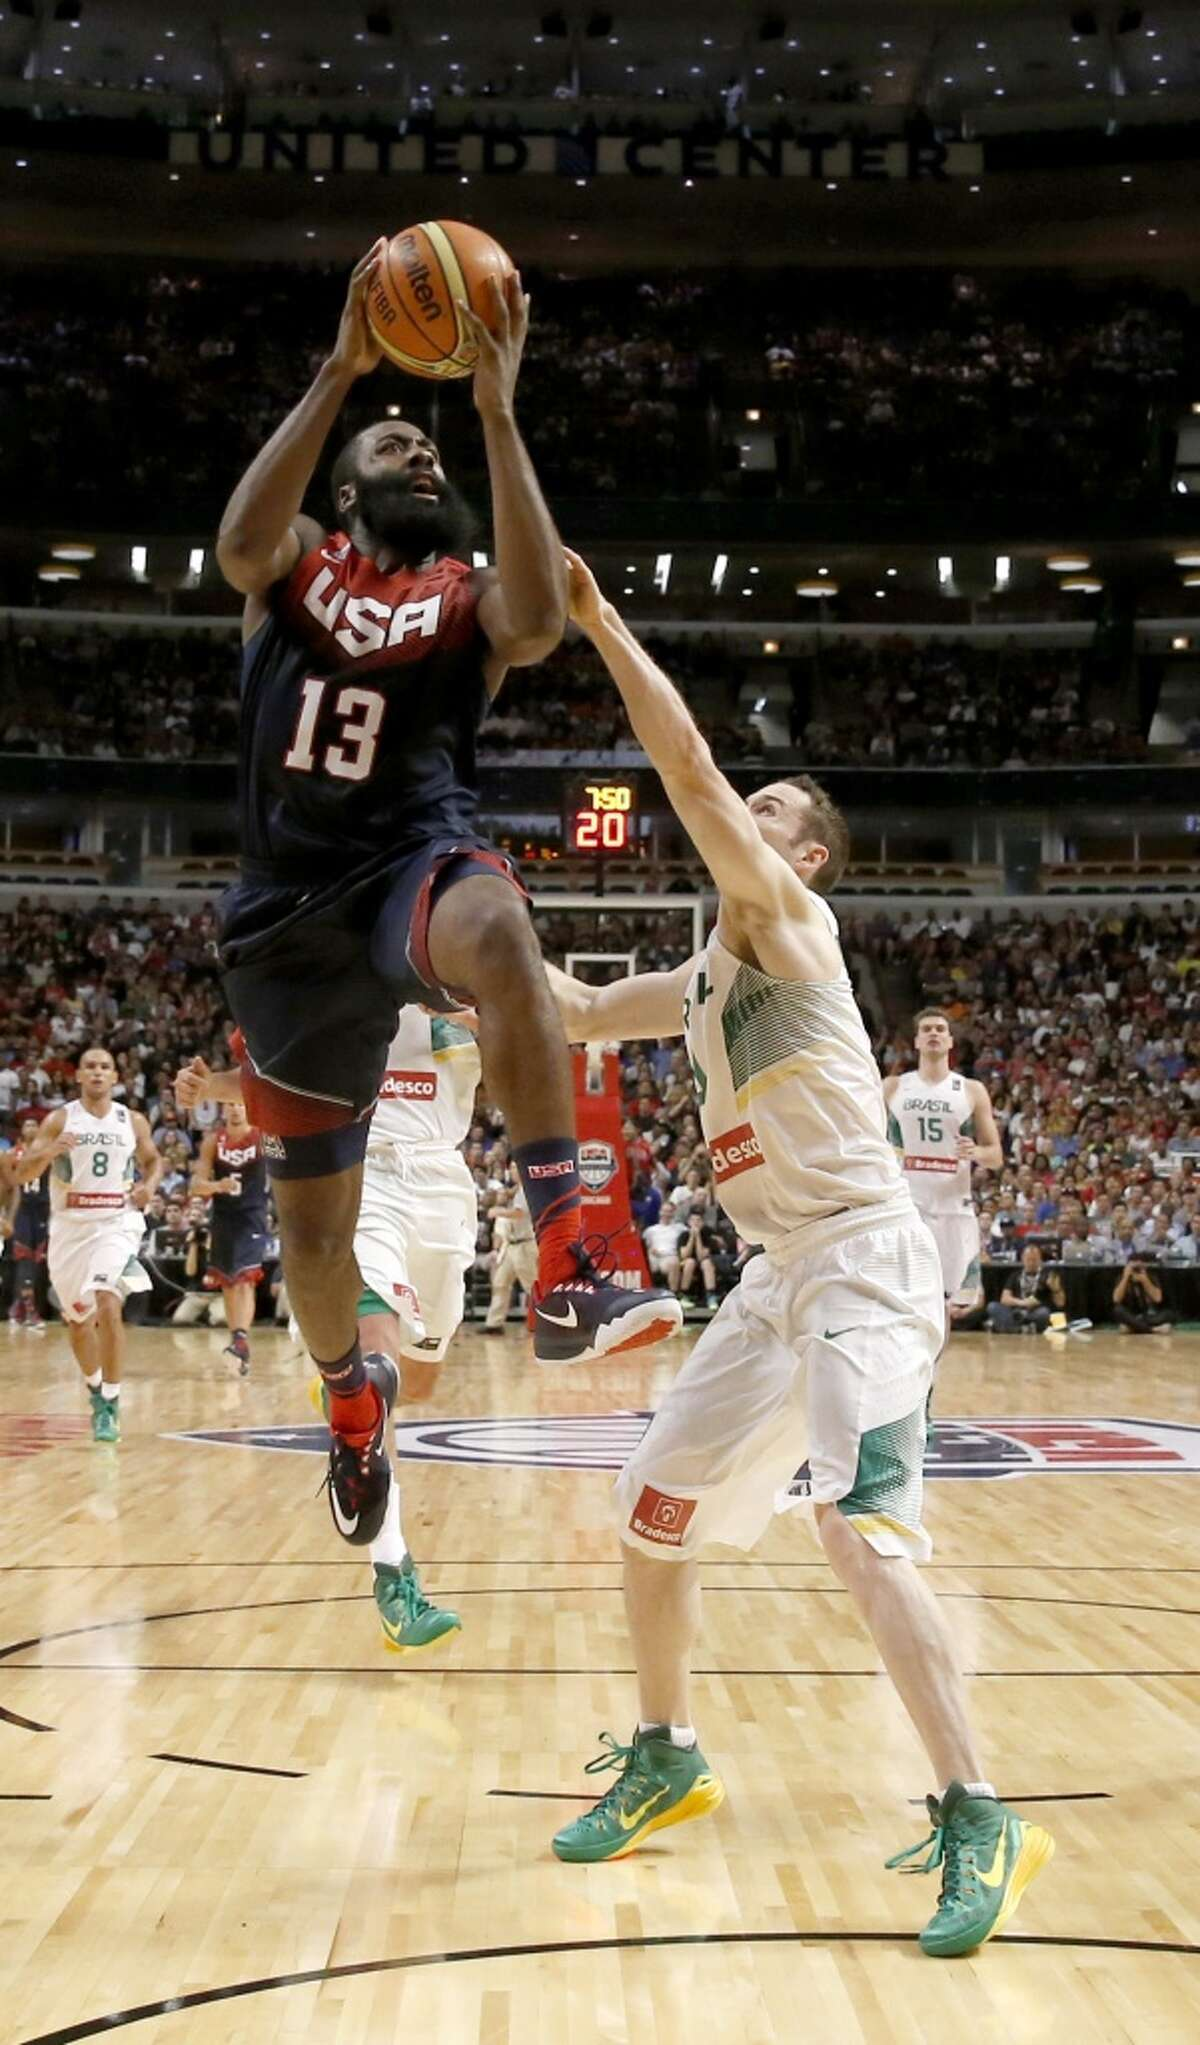 James Harden drives to the basket past Brazil's Marcelo Huertas, during the second half of an exhibition game between the U.S. and Brazilian national teams Saturday, Aug. 16, 2014, in Chicago.